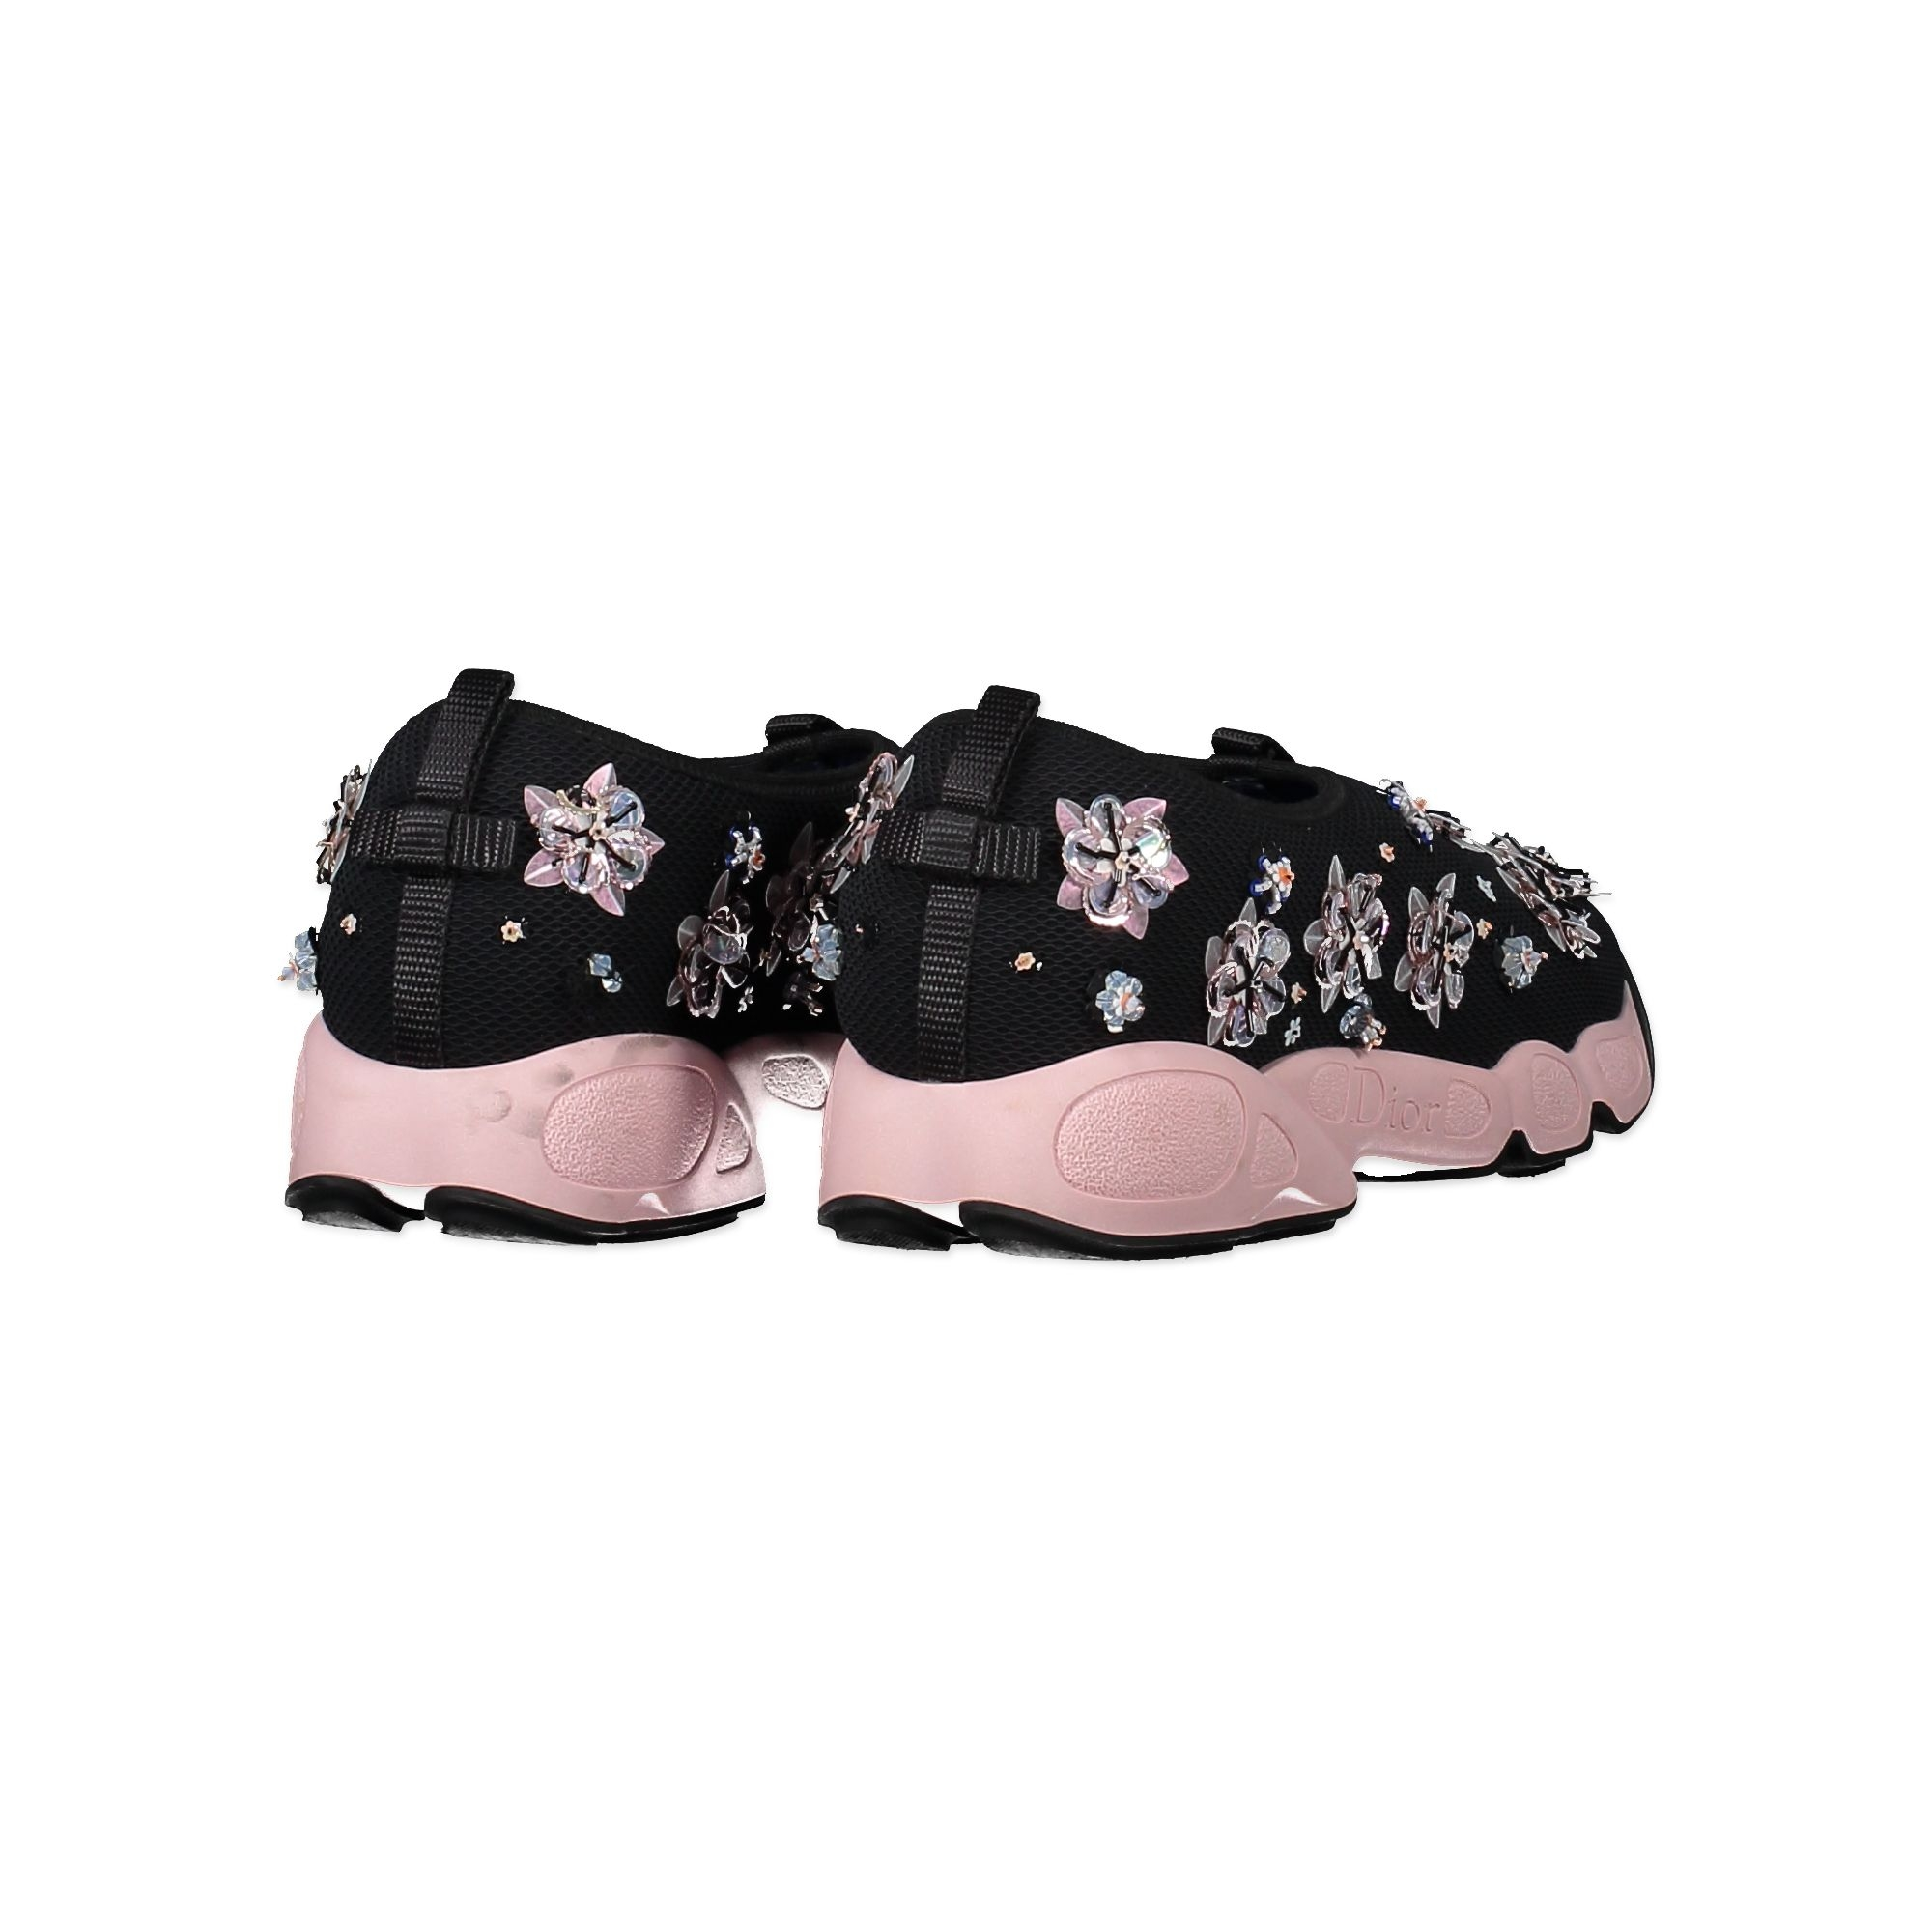 Christian Dior Fusion Pink Flower Embroidered Trainer Sneakers - Size 41